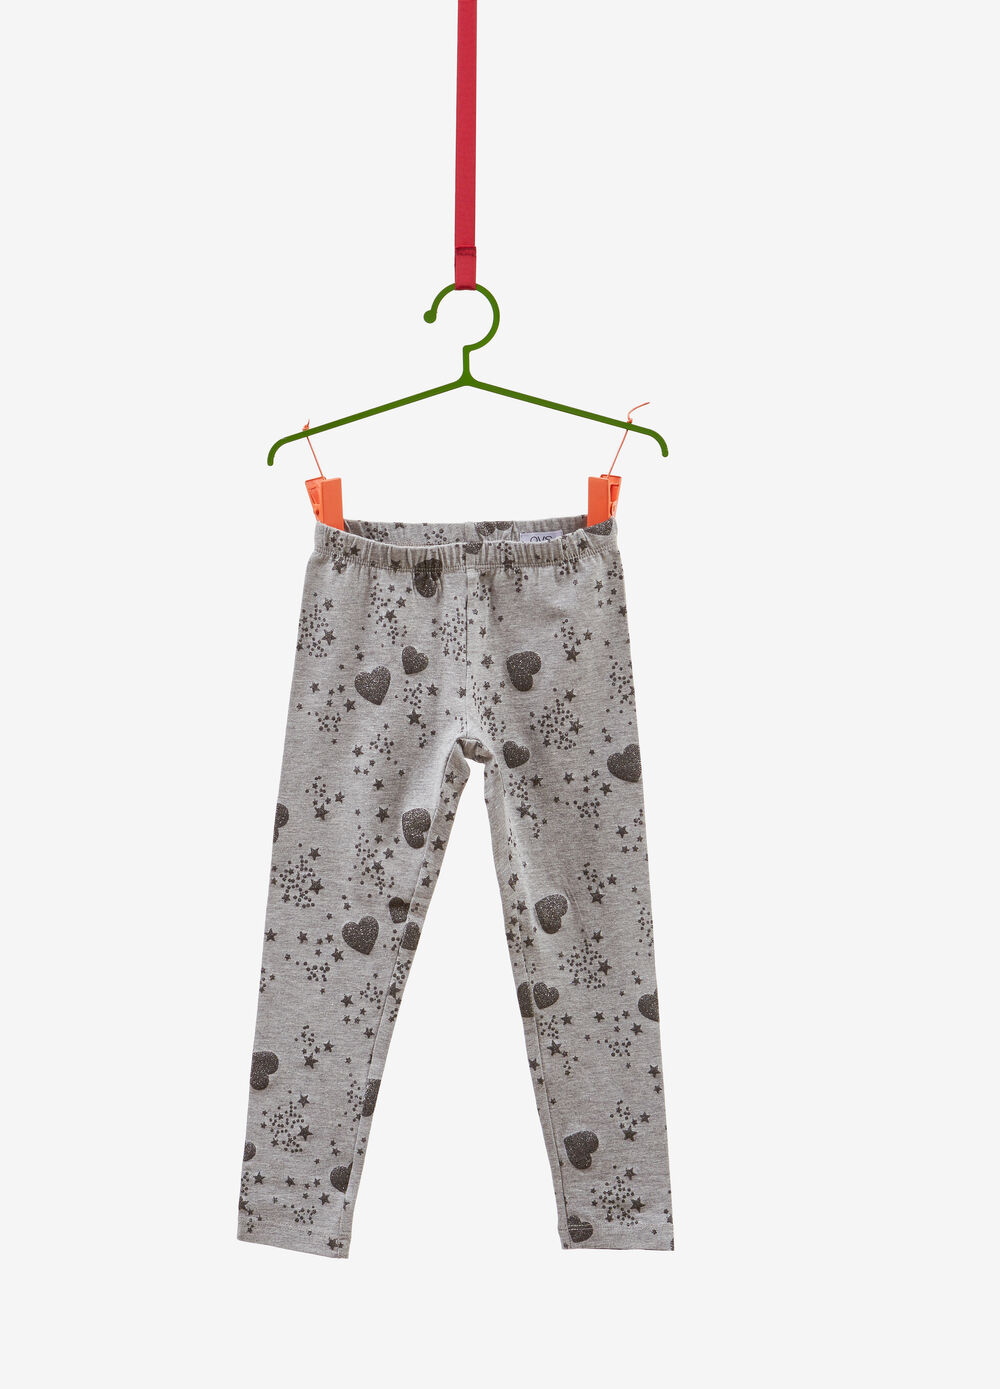 Stretch leggings with glitter stars and hearts